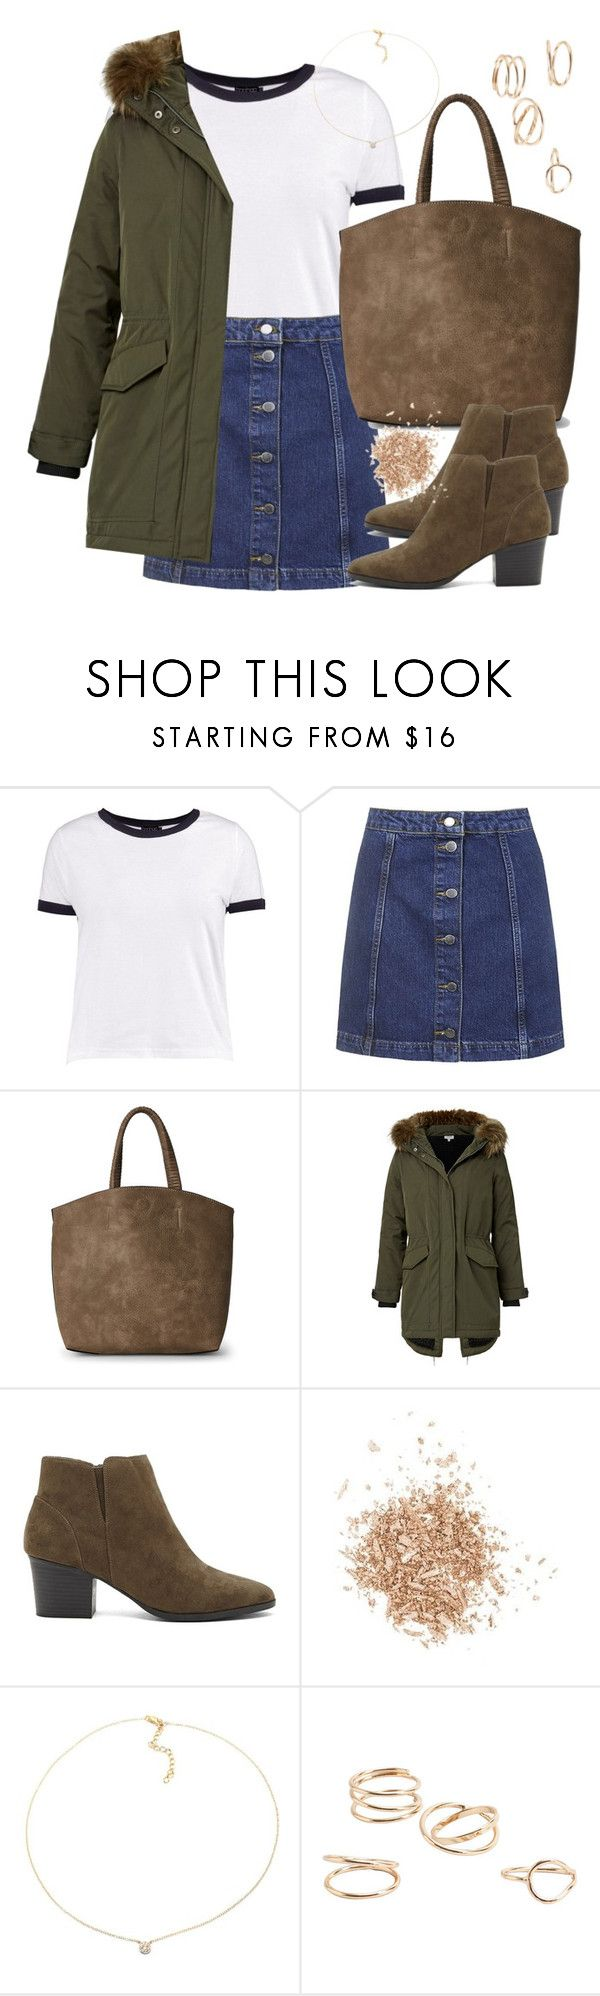 """""""Jessica Davis (13 Reasons Why) inspired outfit"""" by celebgaze ❤ liked on Polyvore featuring Boohoo, Street Level, Forever 21, Topshop, Evie & Emma, MANGO, thirteenreasonswhy, 13reasonswhy, 13rw and Jessicadavis"""